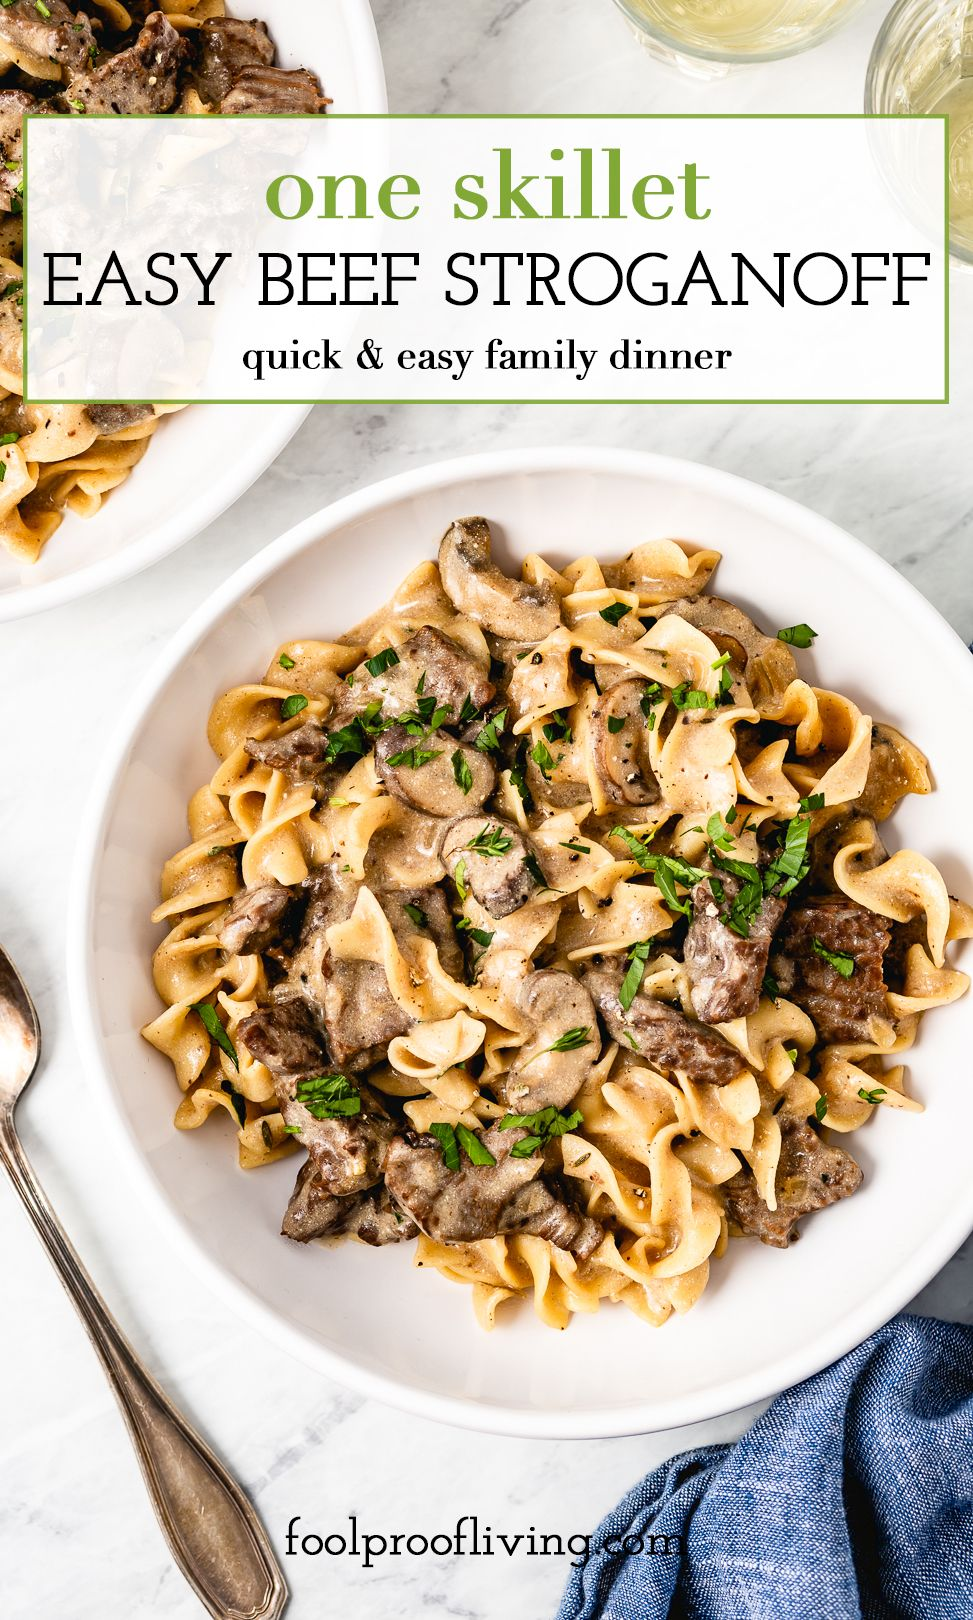 Pin On Foolproof Living Recipes Pins With Text